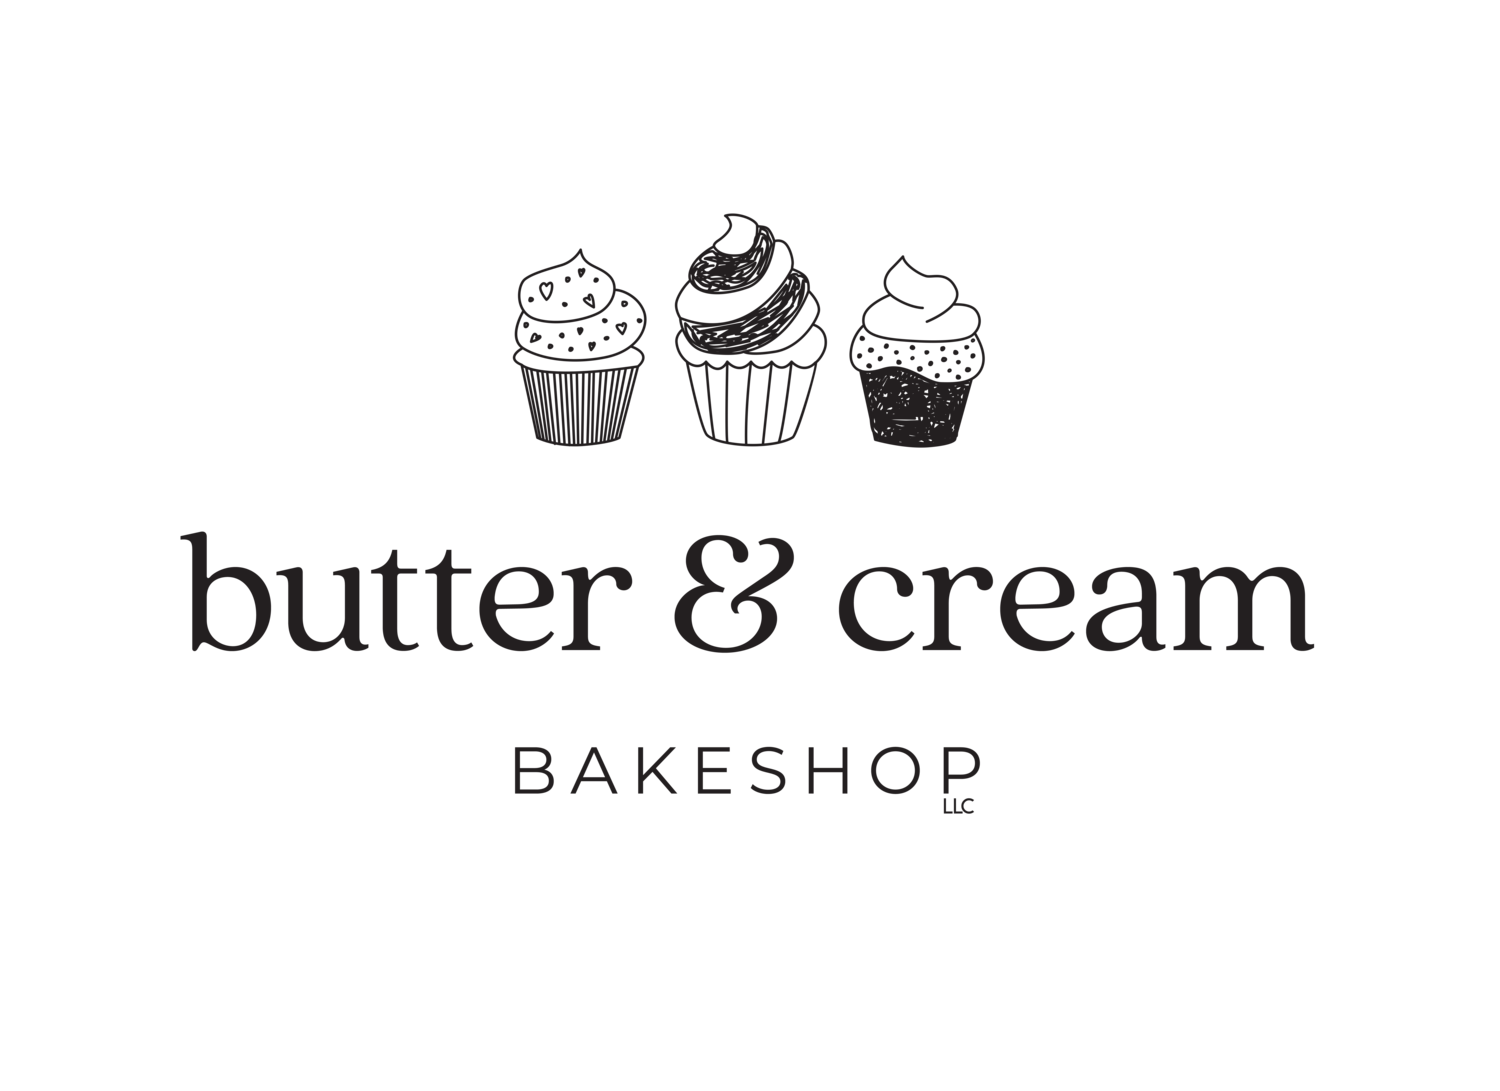 Butter & Cream Bakeshop LLC